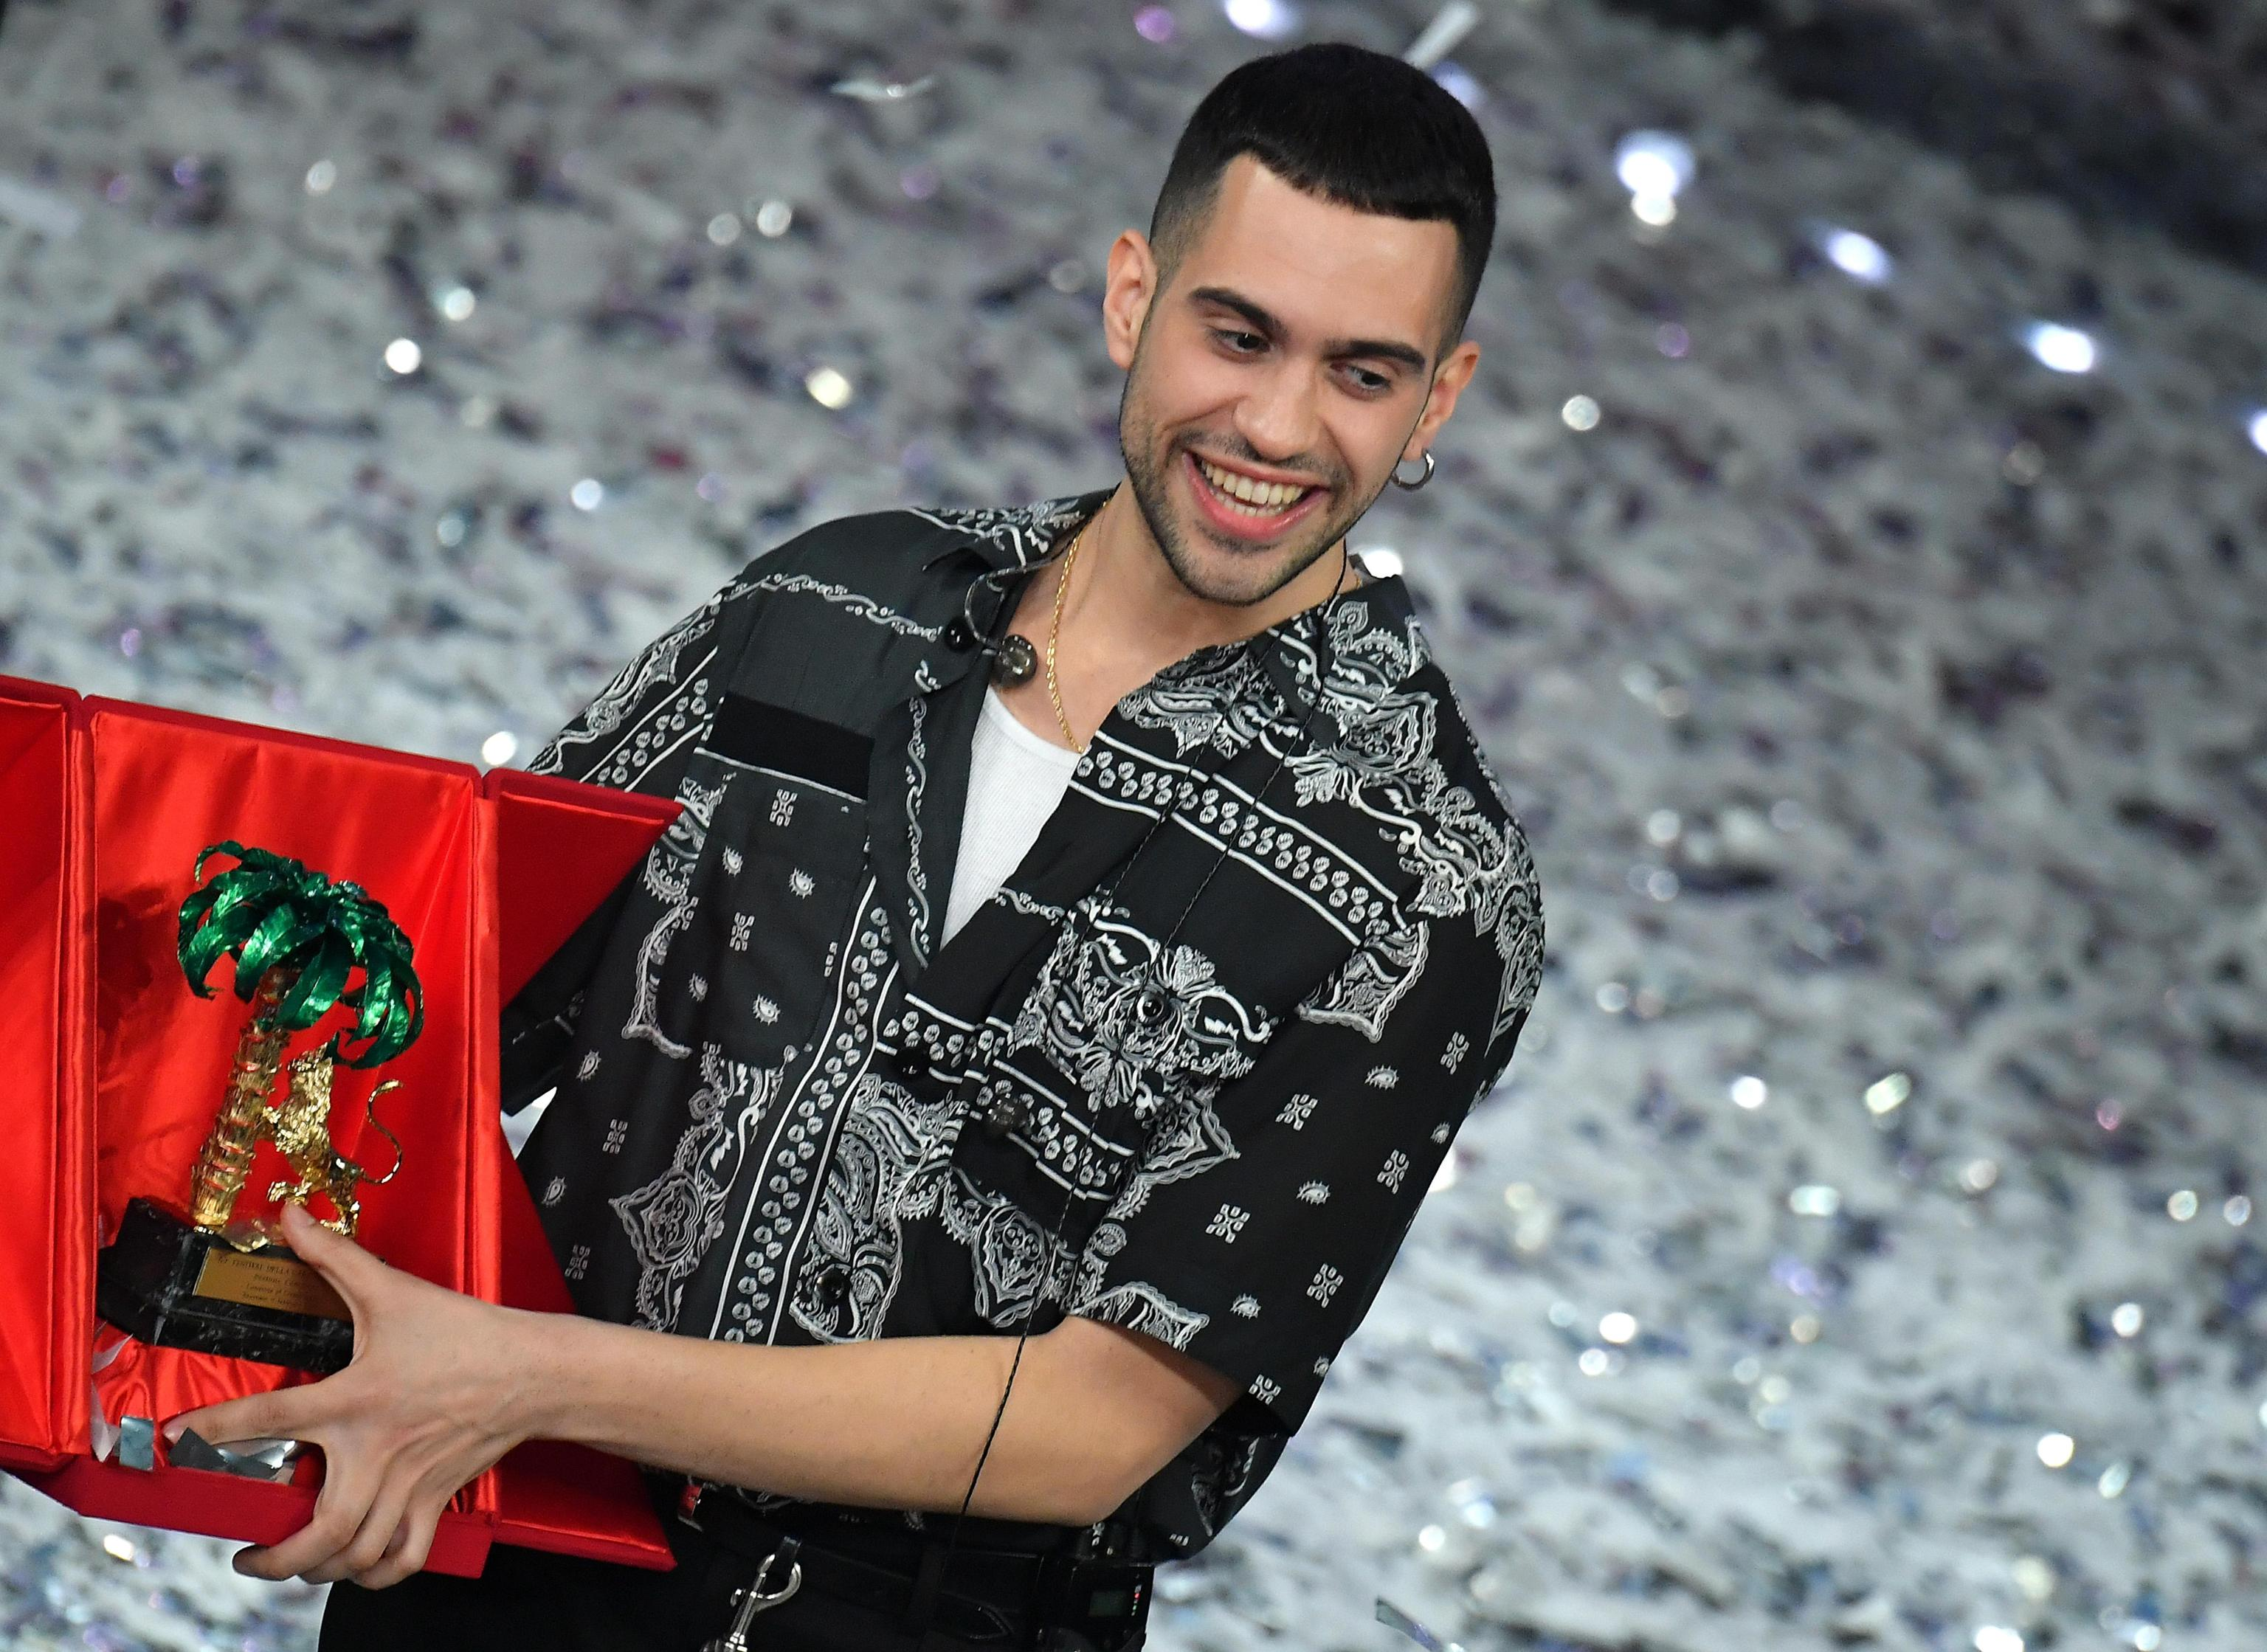 Mahmood all'Eurovision Song Contest 2019 con Soldi: il cantante dice sì